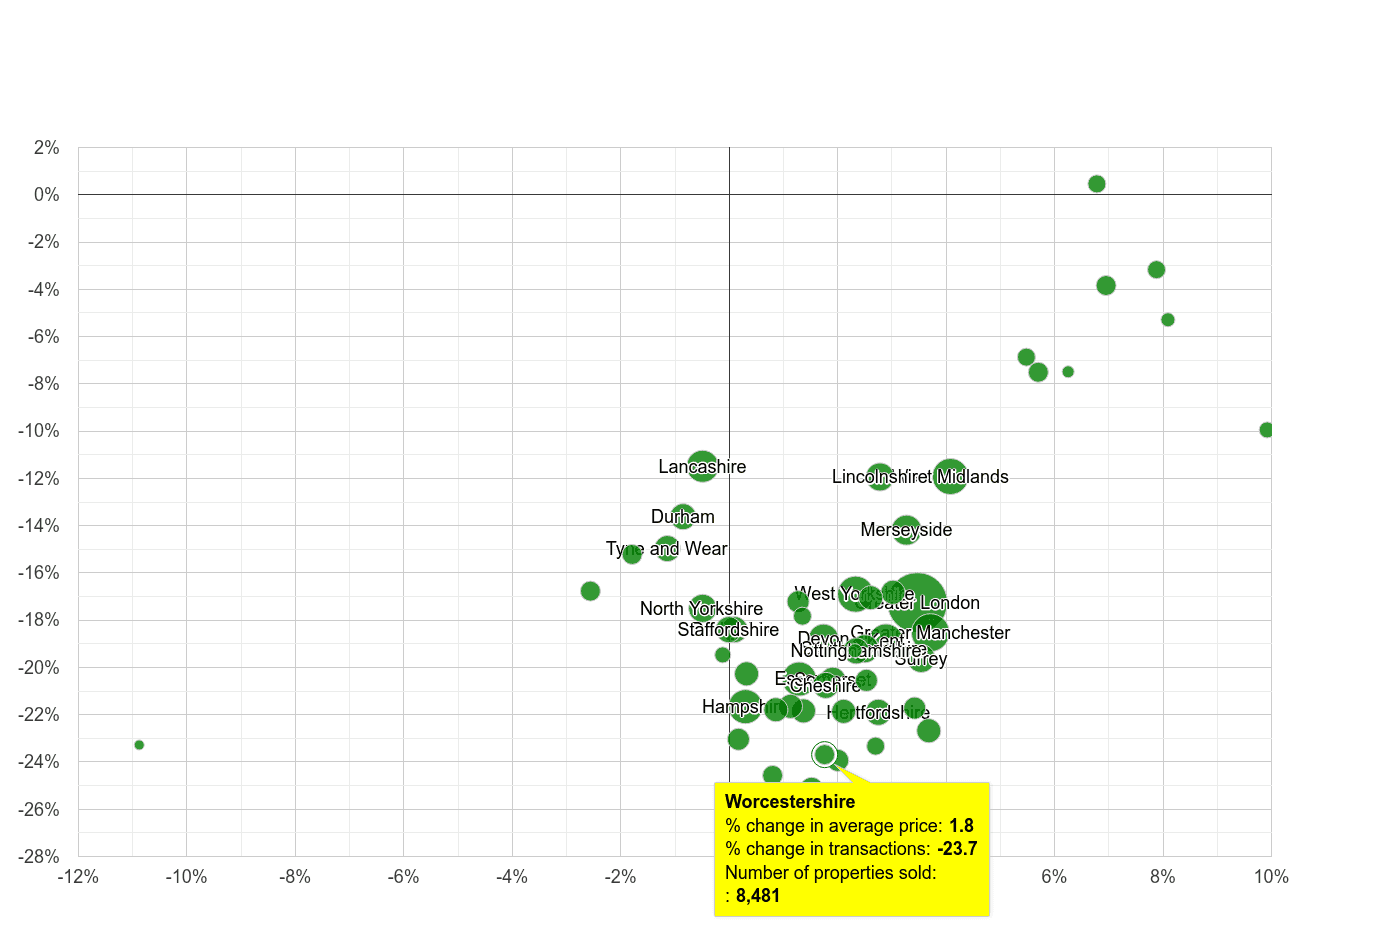 Worcestershire property price and sales volume change relative to other counties